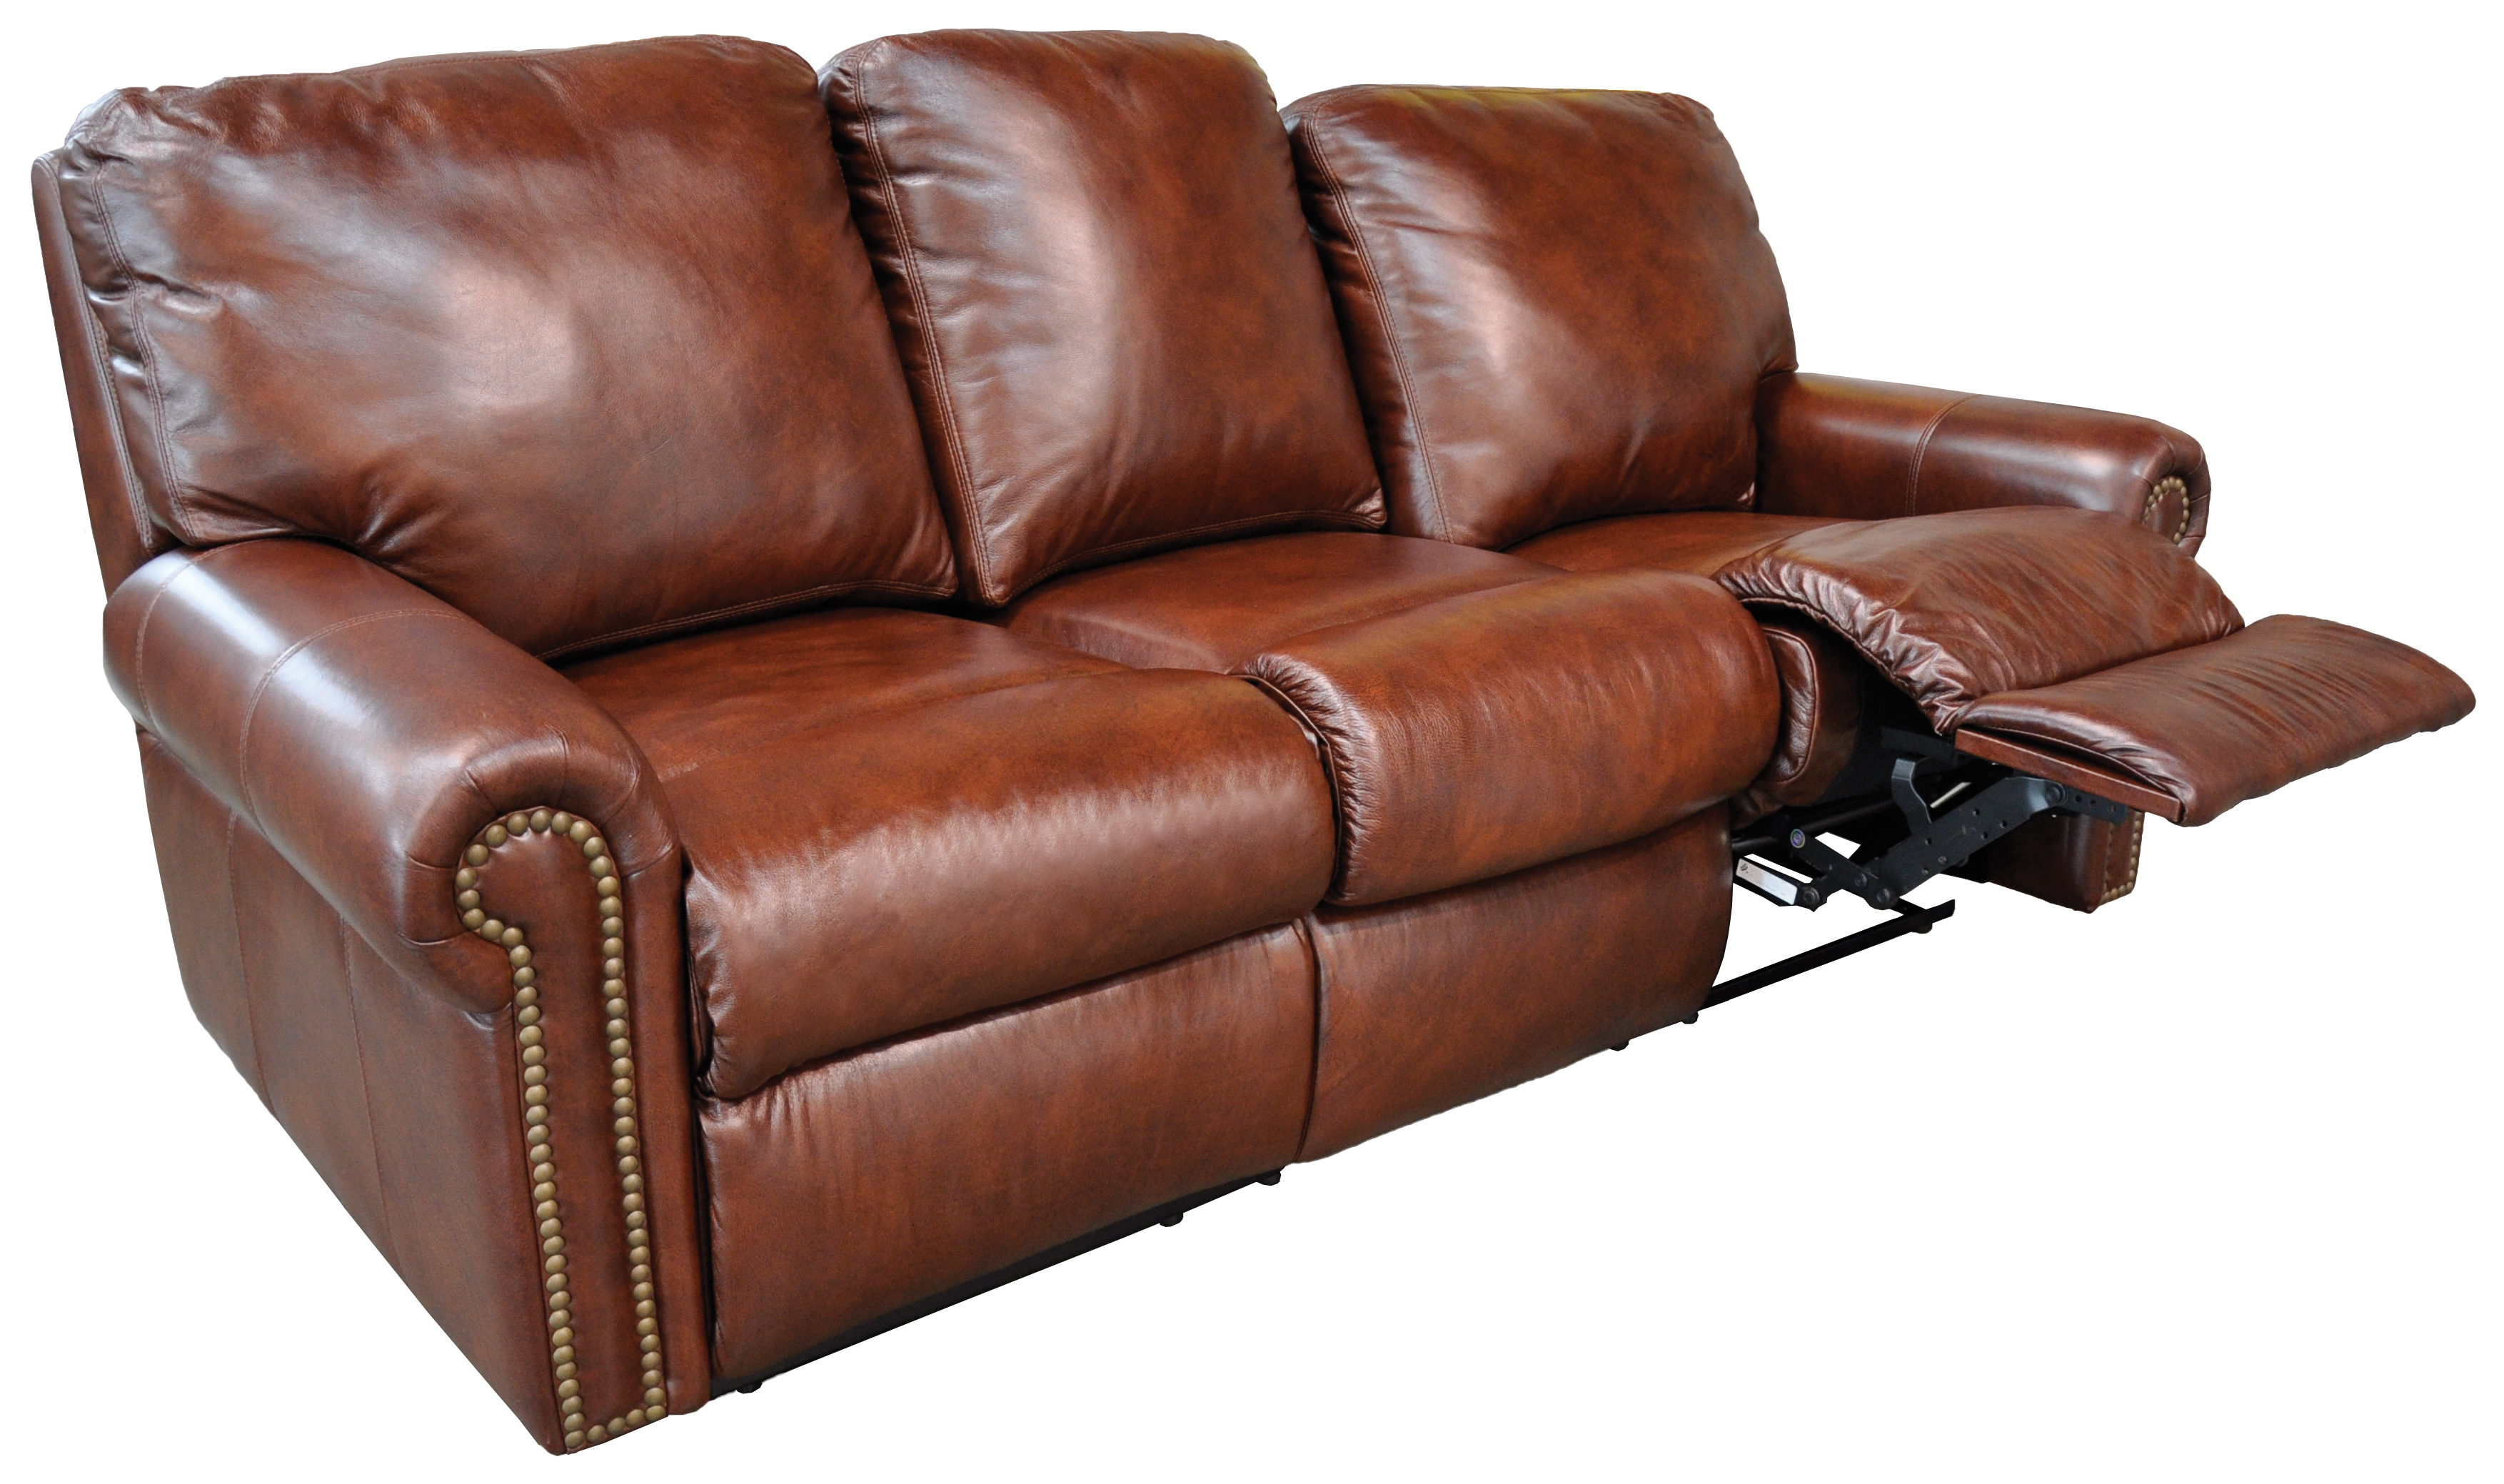 Modern Fairmont Reclining Furniture reclining leather sofa